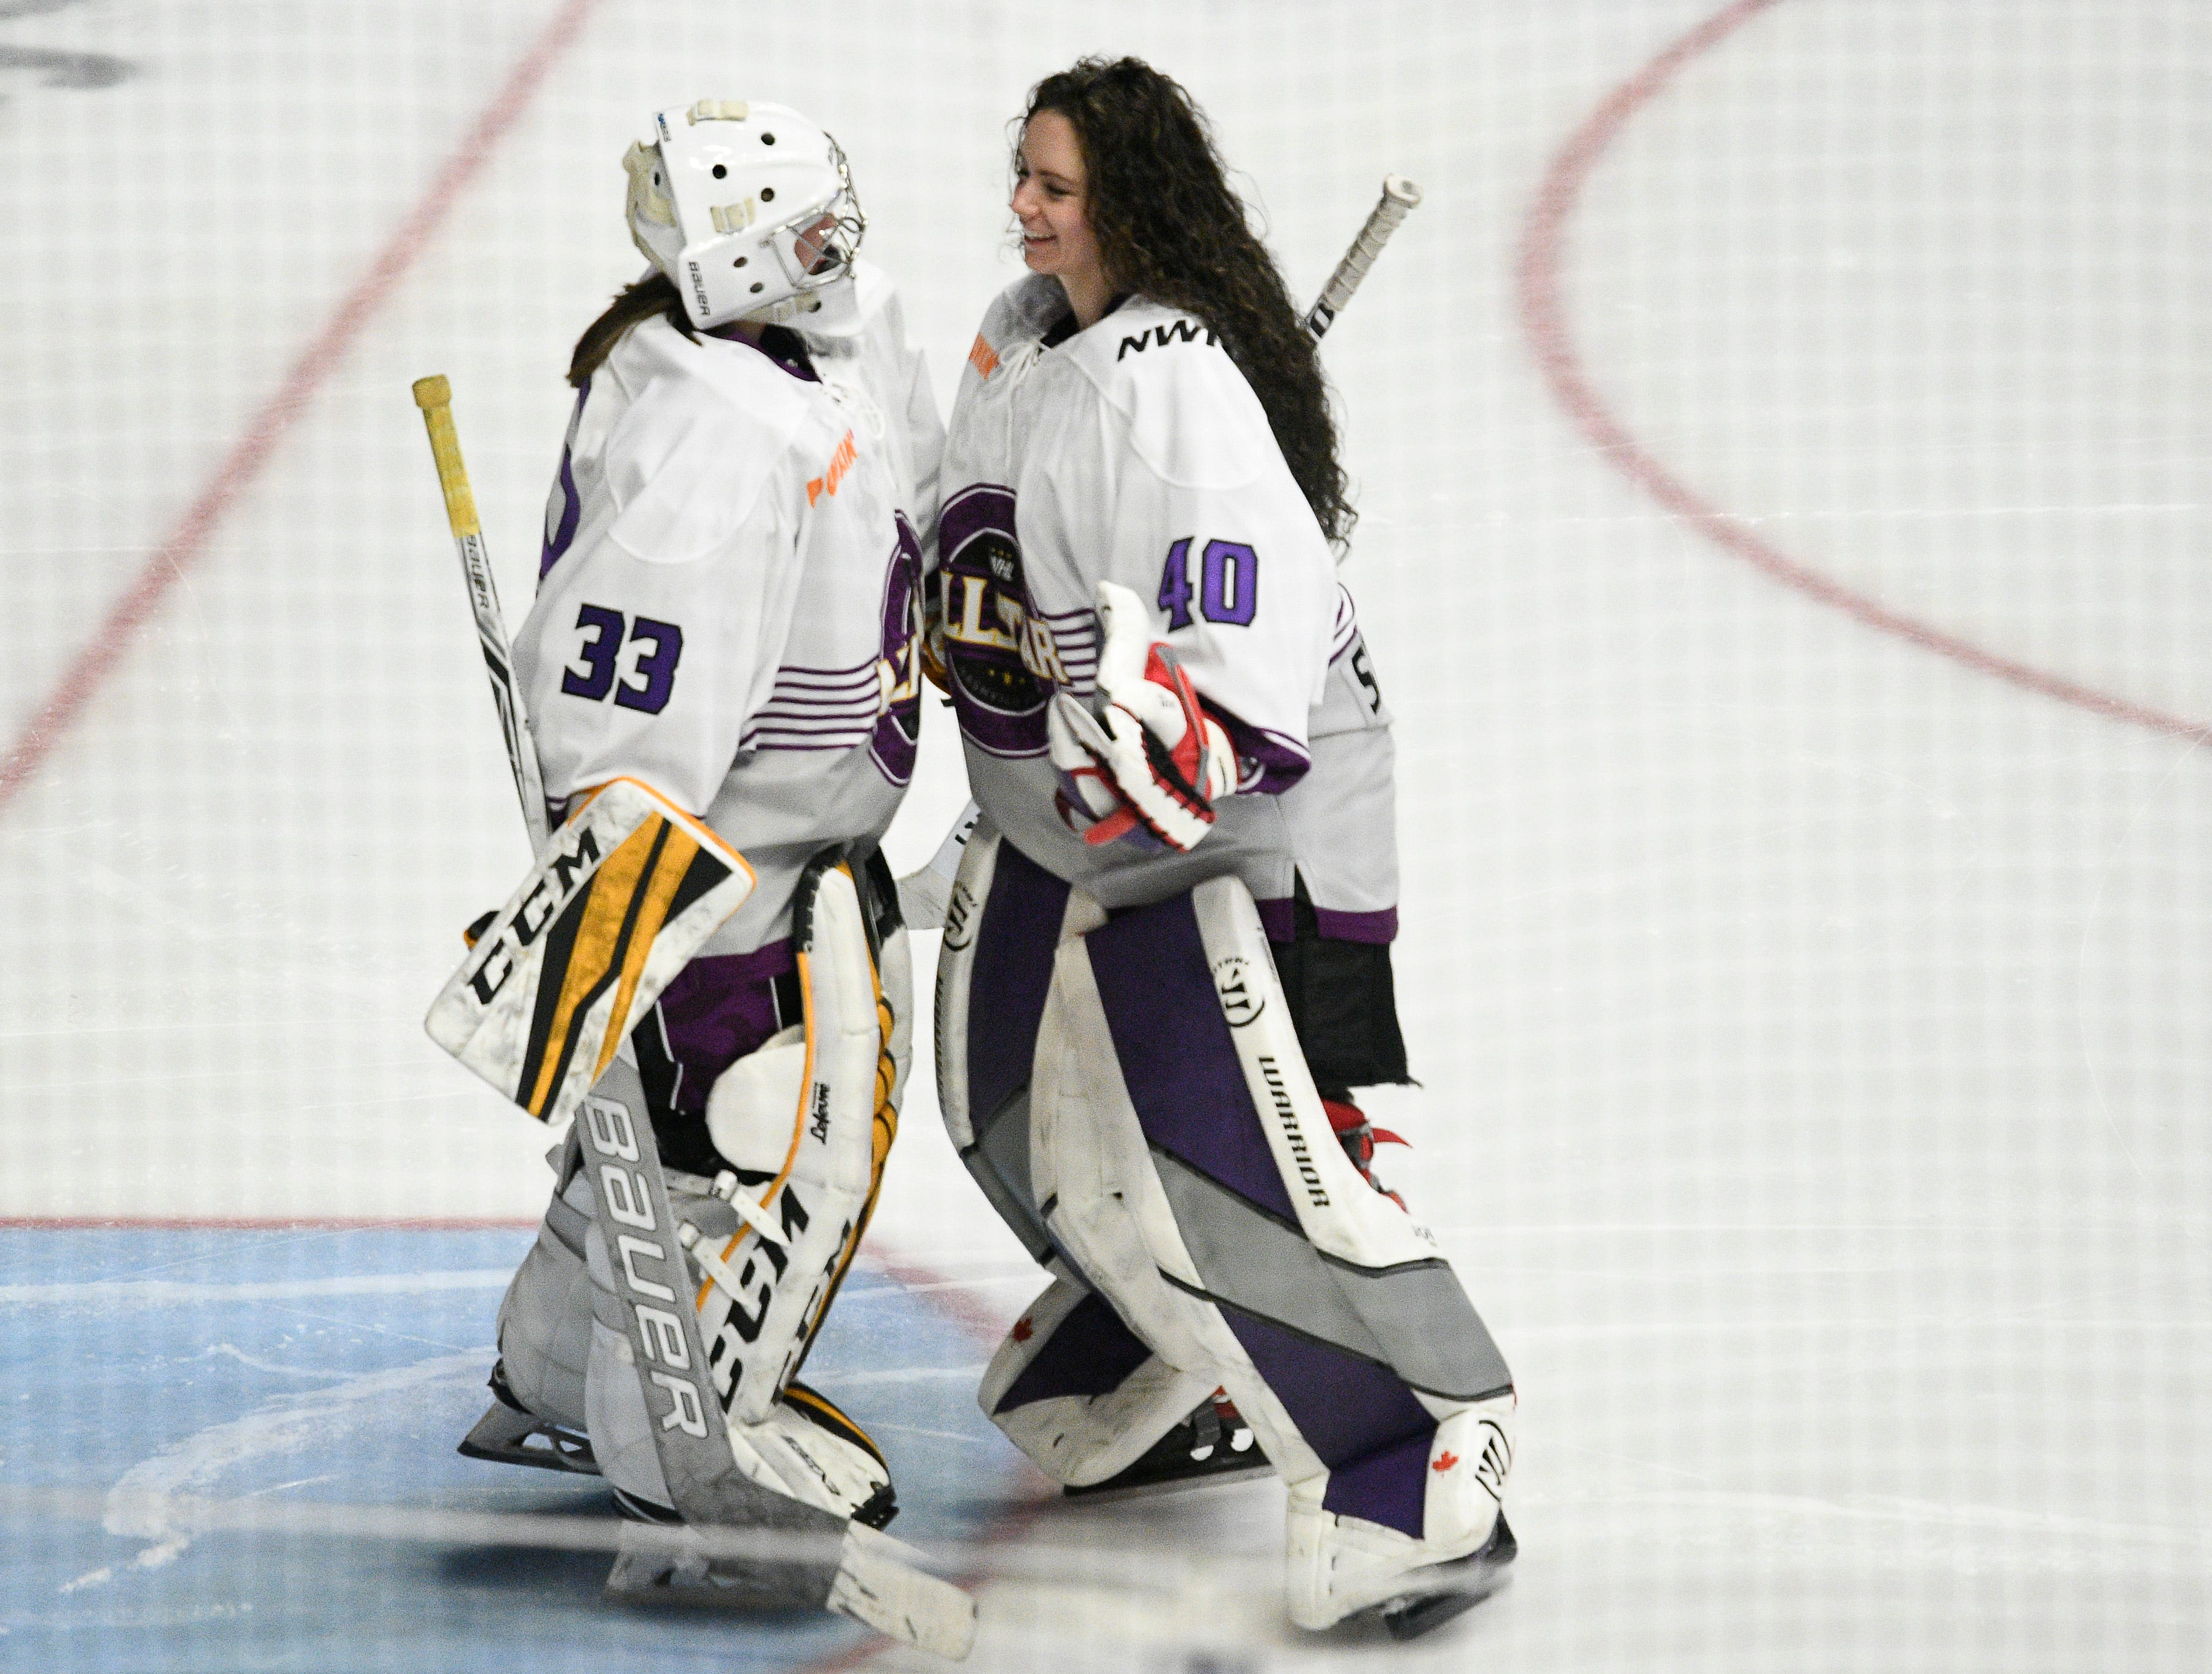 Team Szabados goalies Katie Burt and Shannon Szabdos greet each other before their game against Team Stecklein in the NWHL All Star game at Bridgestone Arena Sunday Feb. 10, 2019 in Nashville, Tenn.